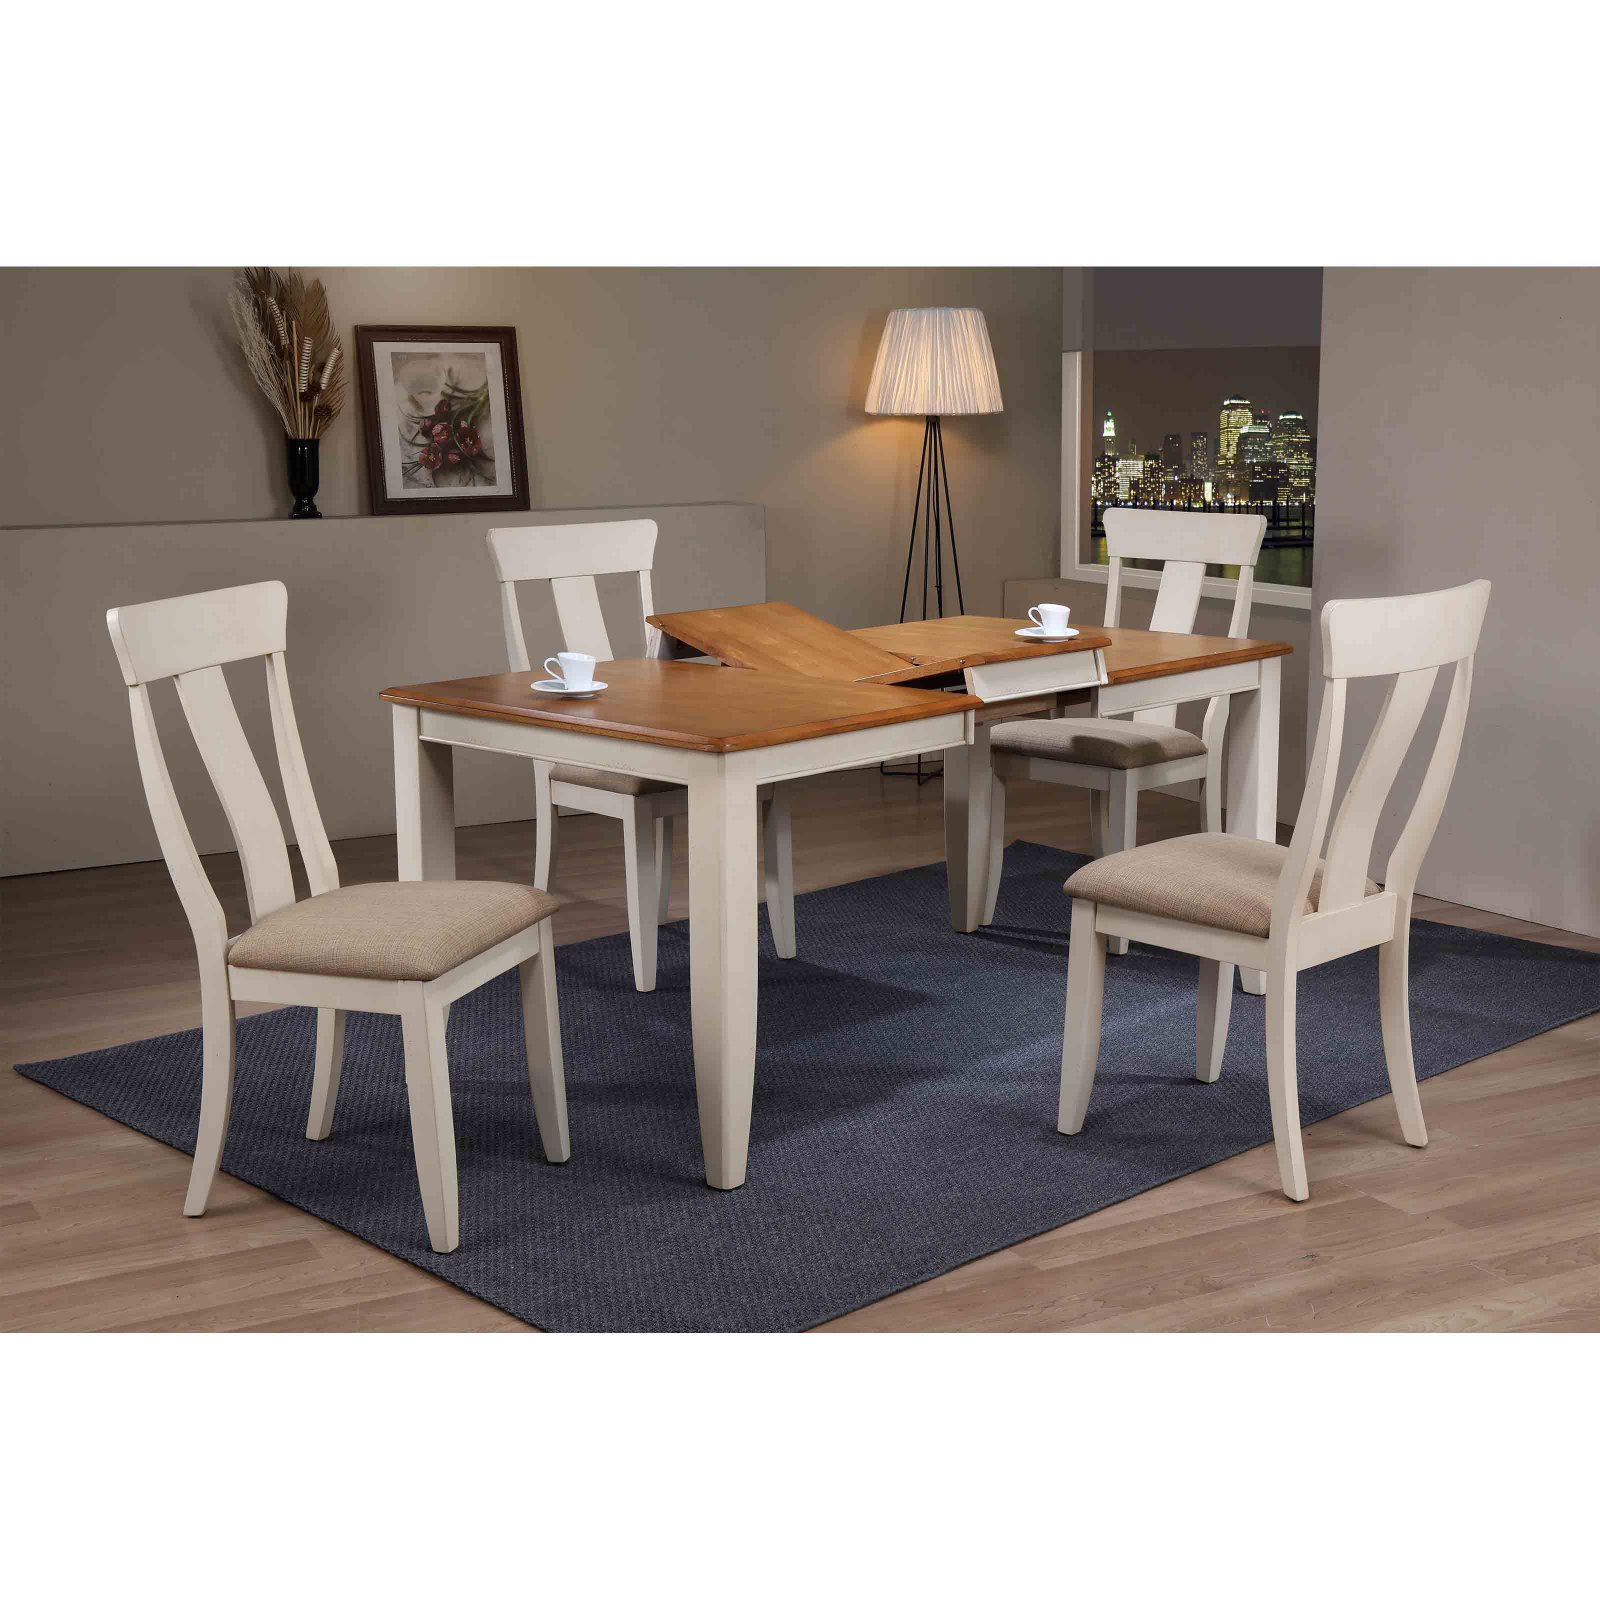 Iconic Furniture Rectangle Antiqued Upholstered Panel Back 5 Piece Dining Table Set